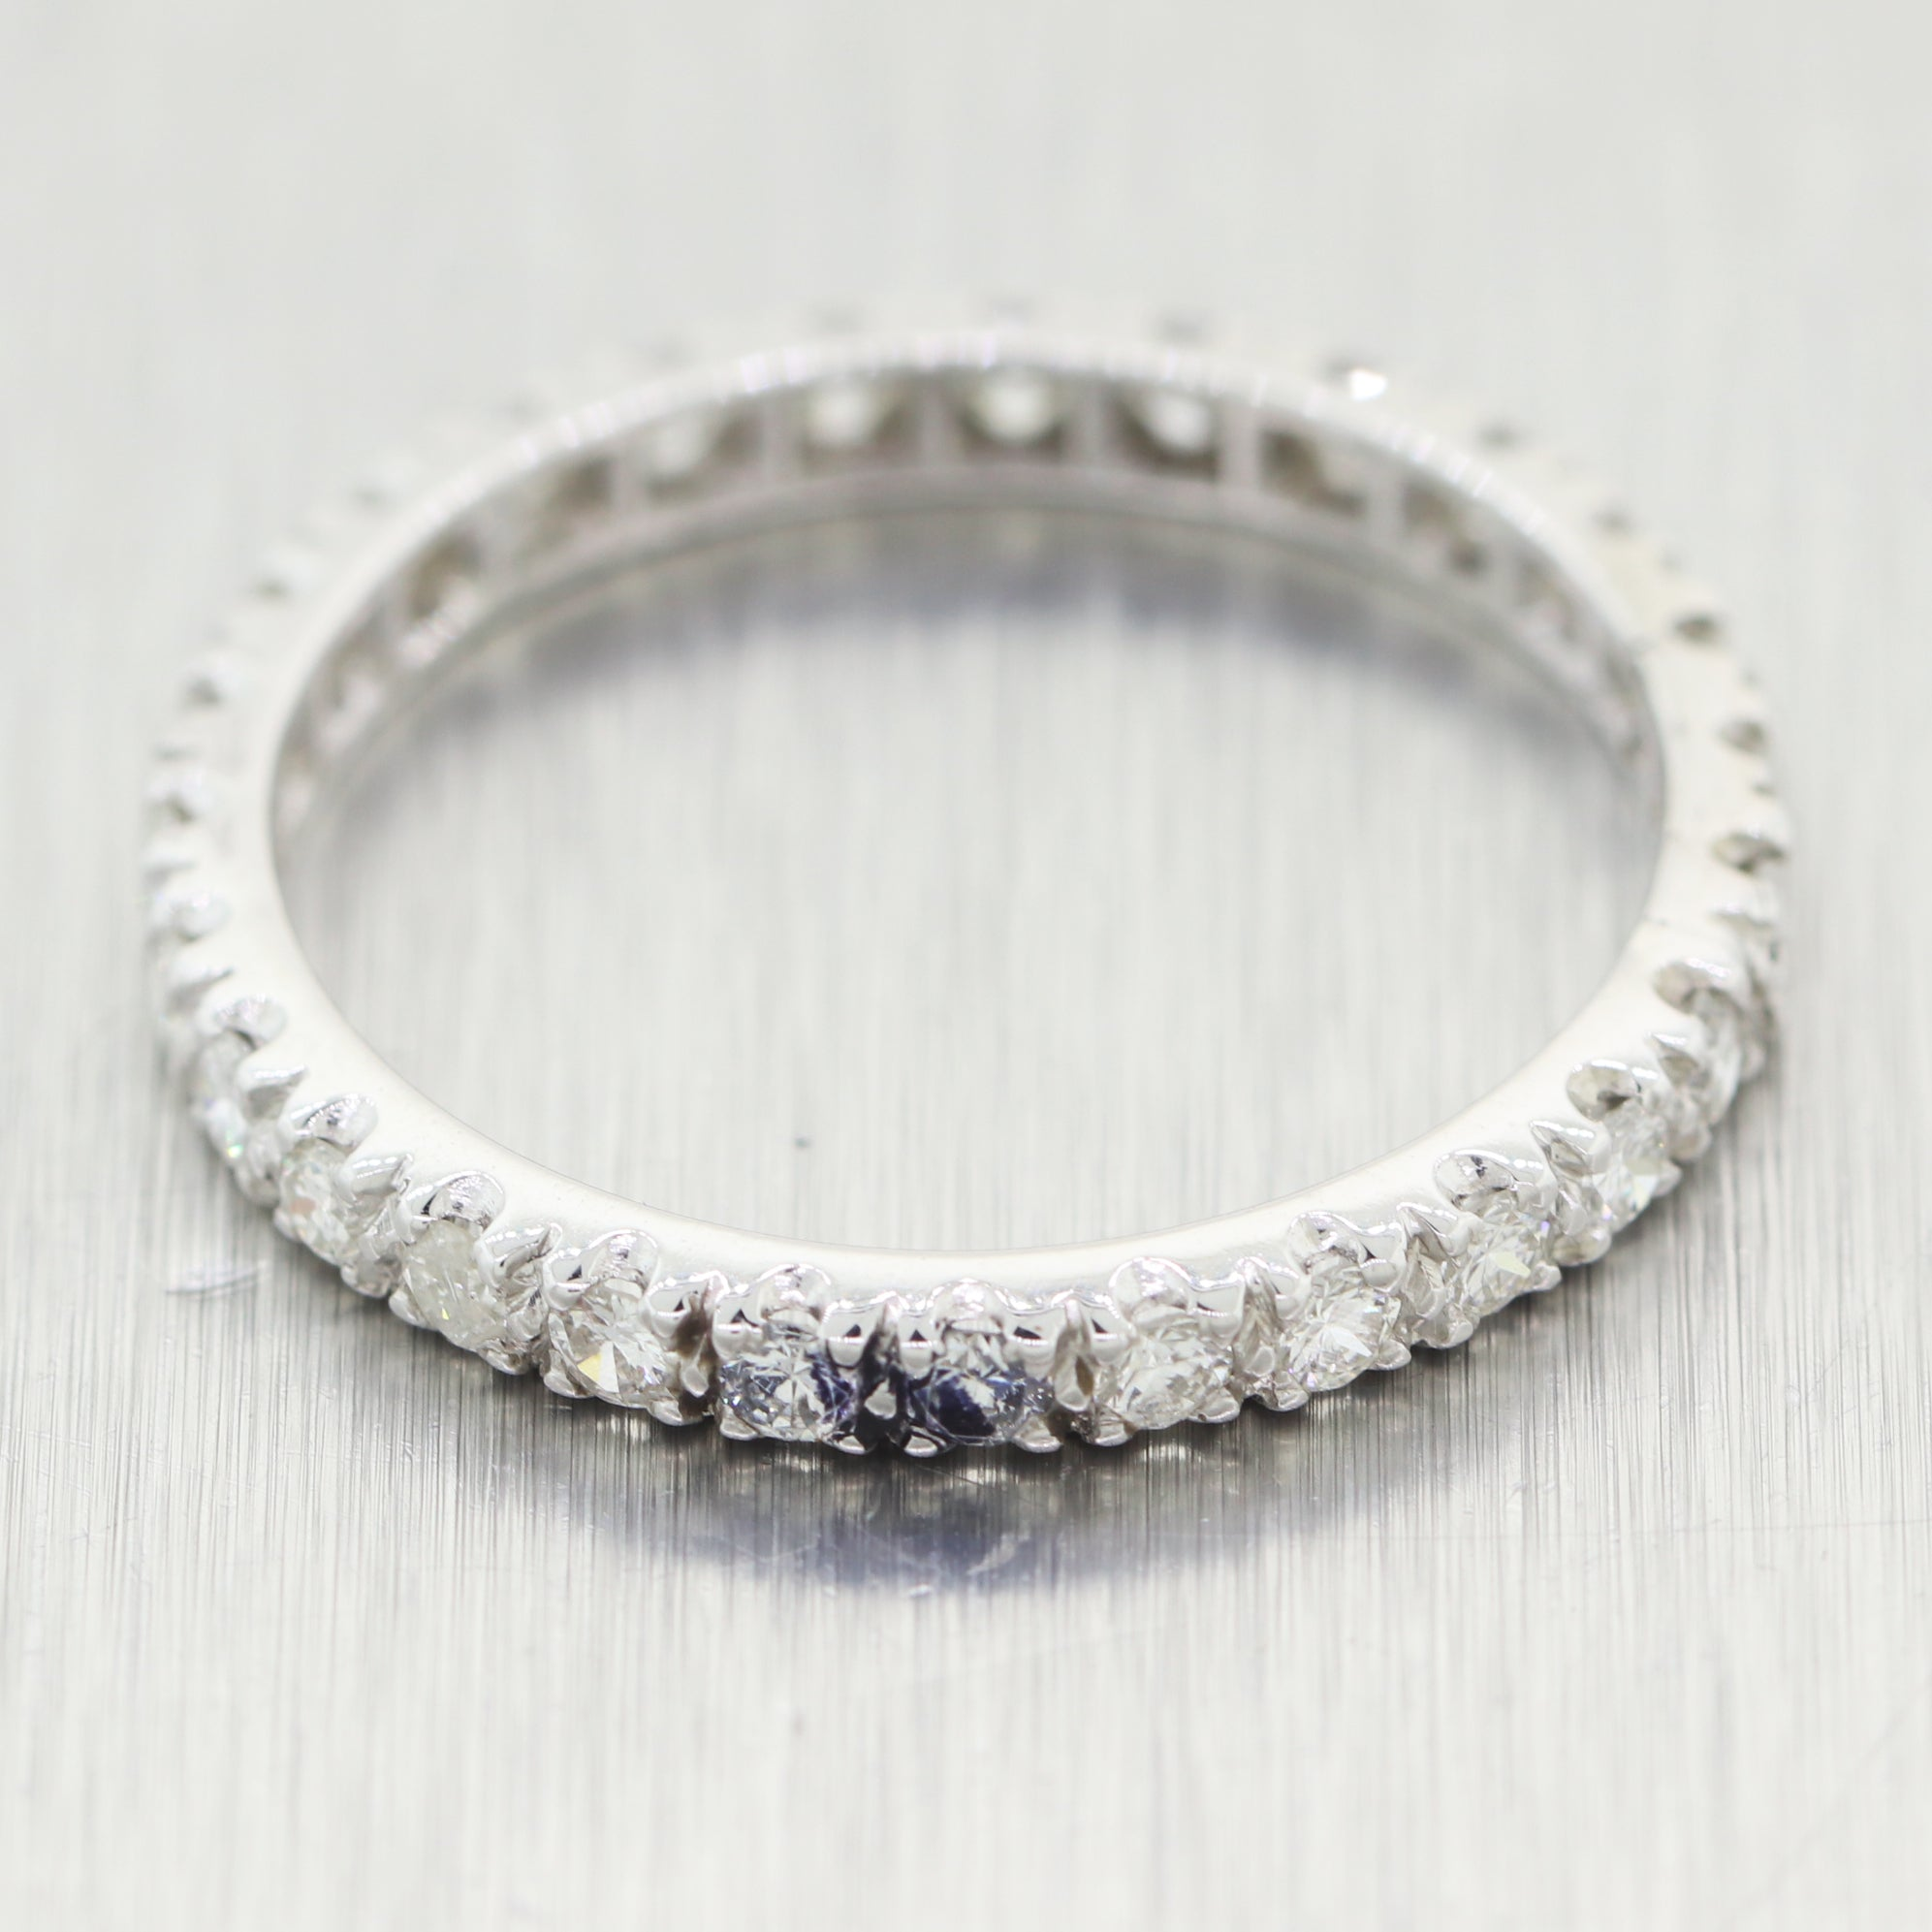 Antique Art Deco Platinum 1ctw Diamond Eternity Band Ring